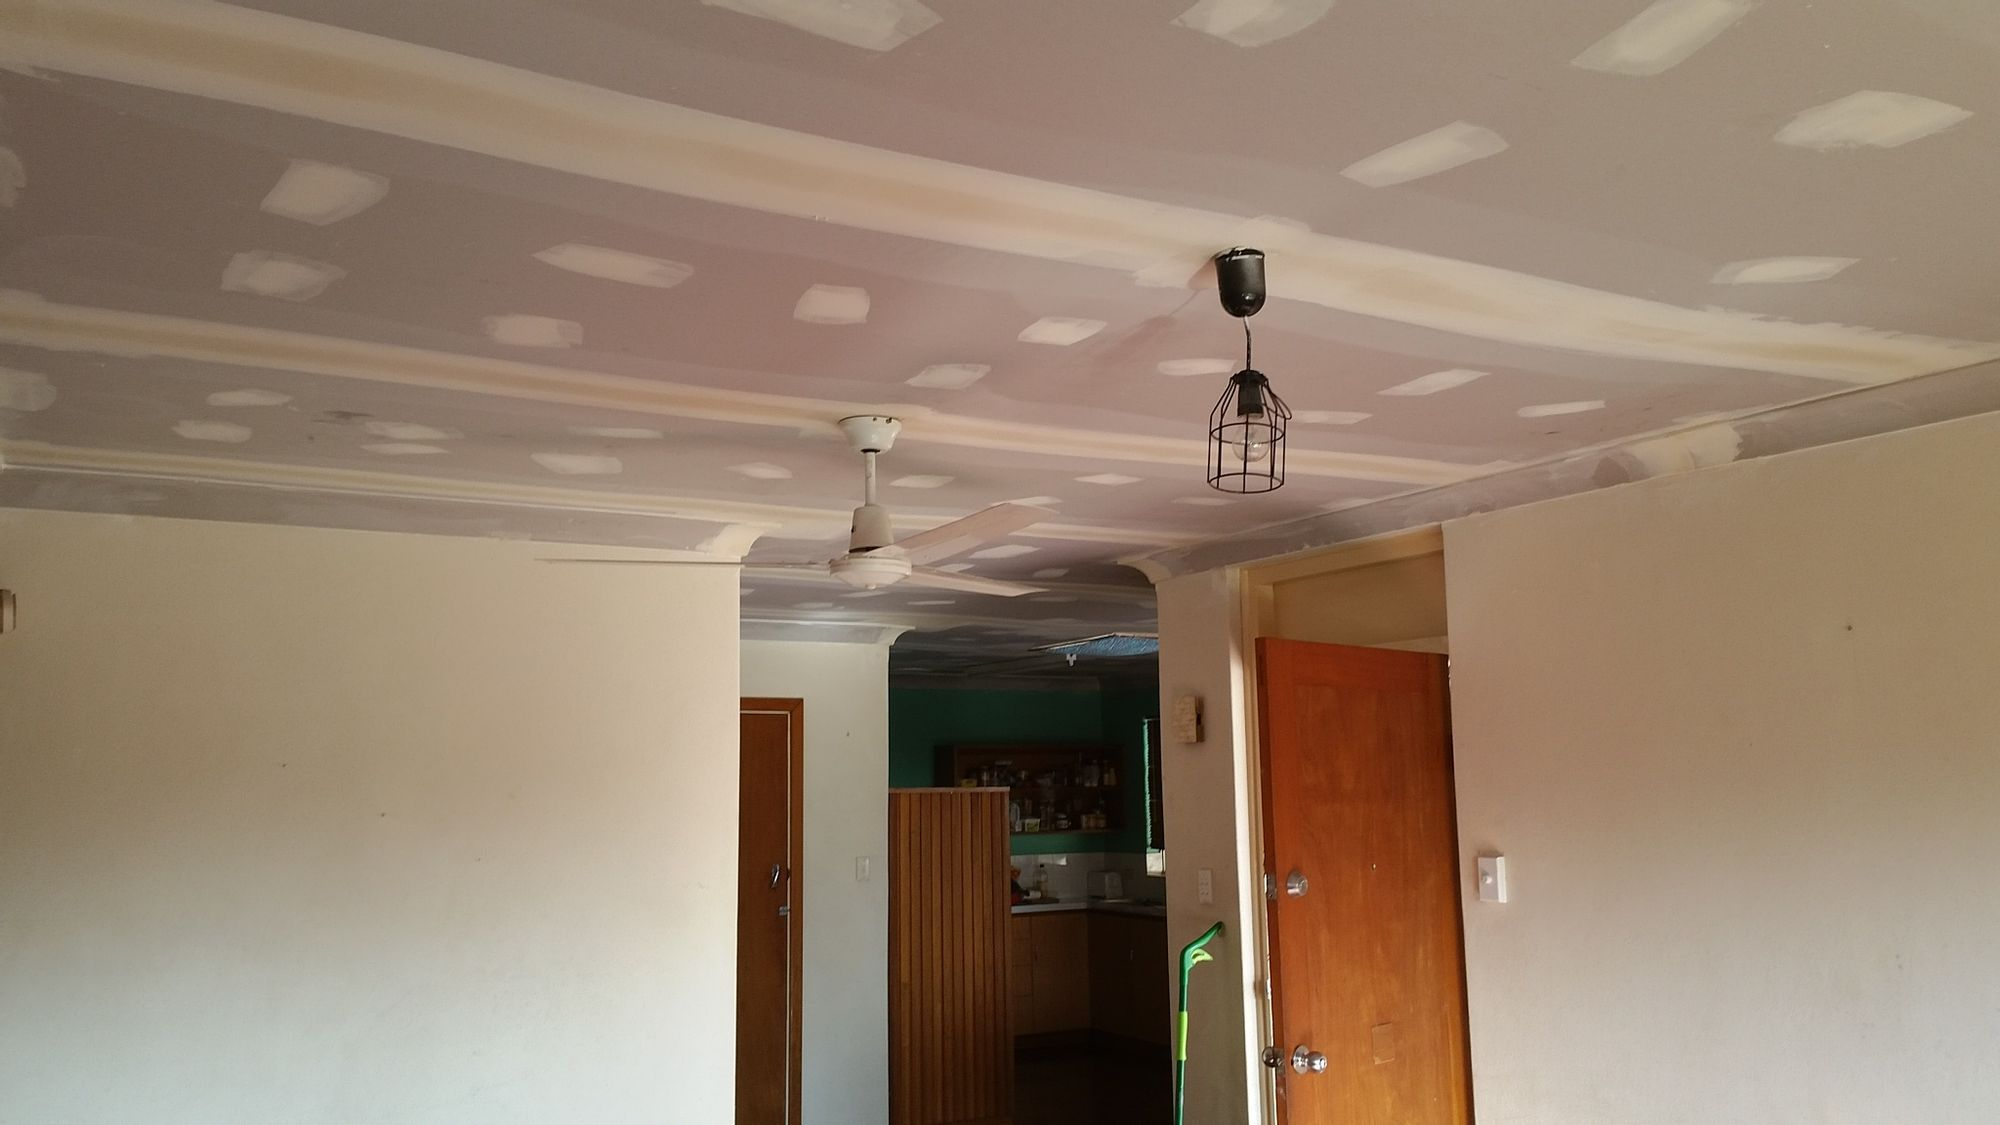 After | We repair ceilings right across Perth (16)